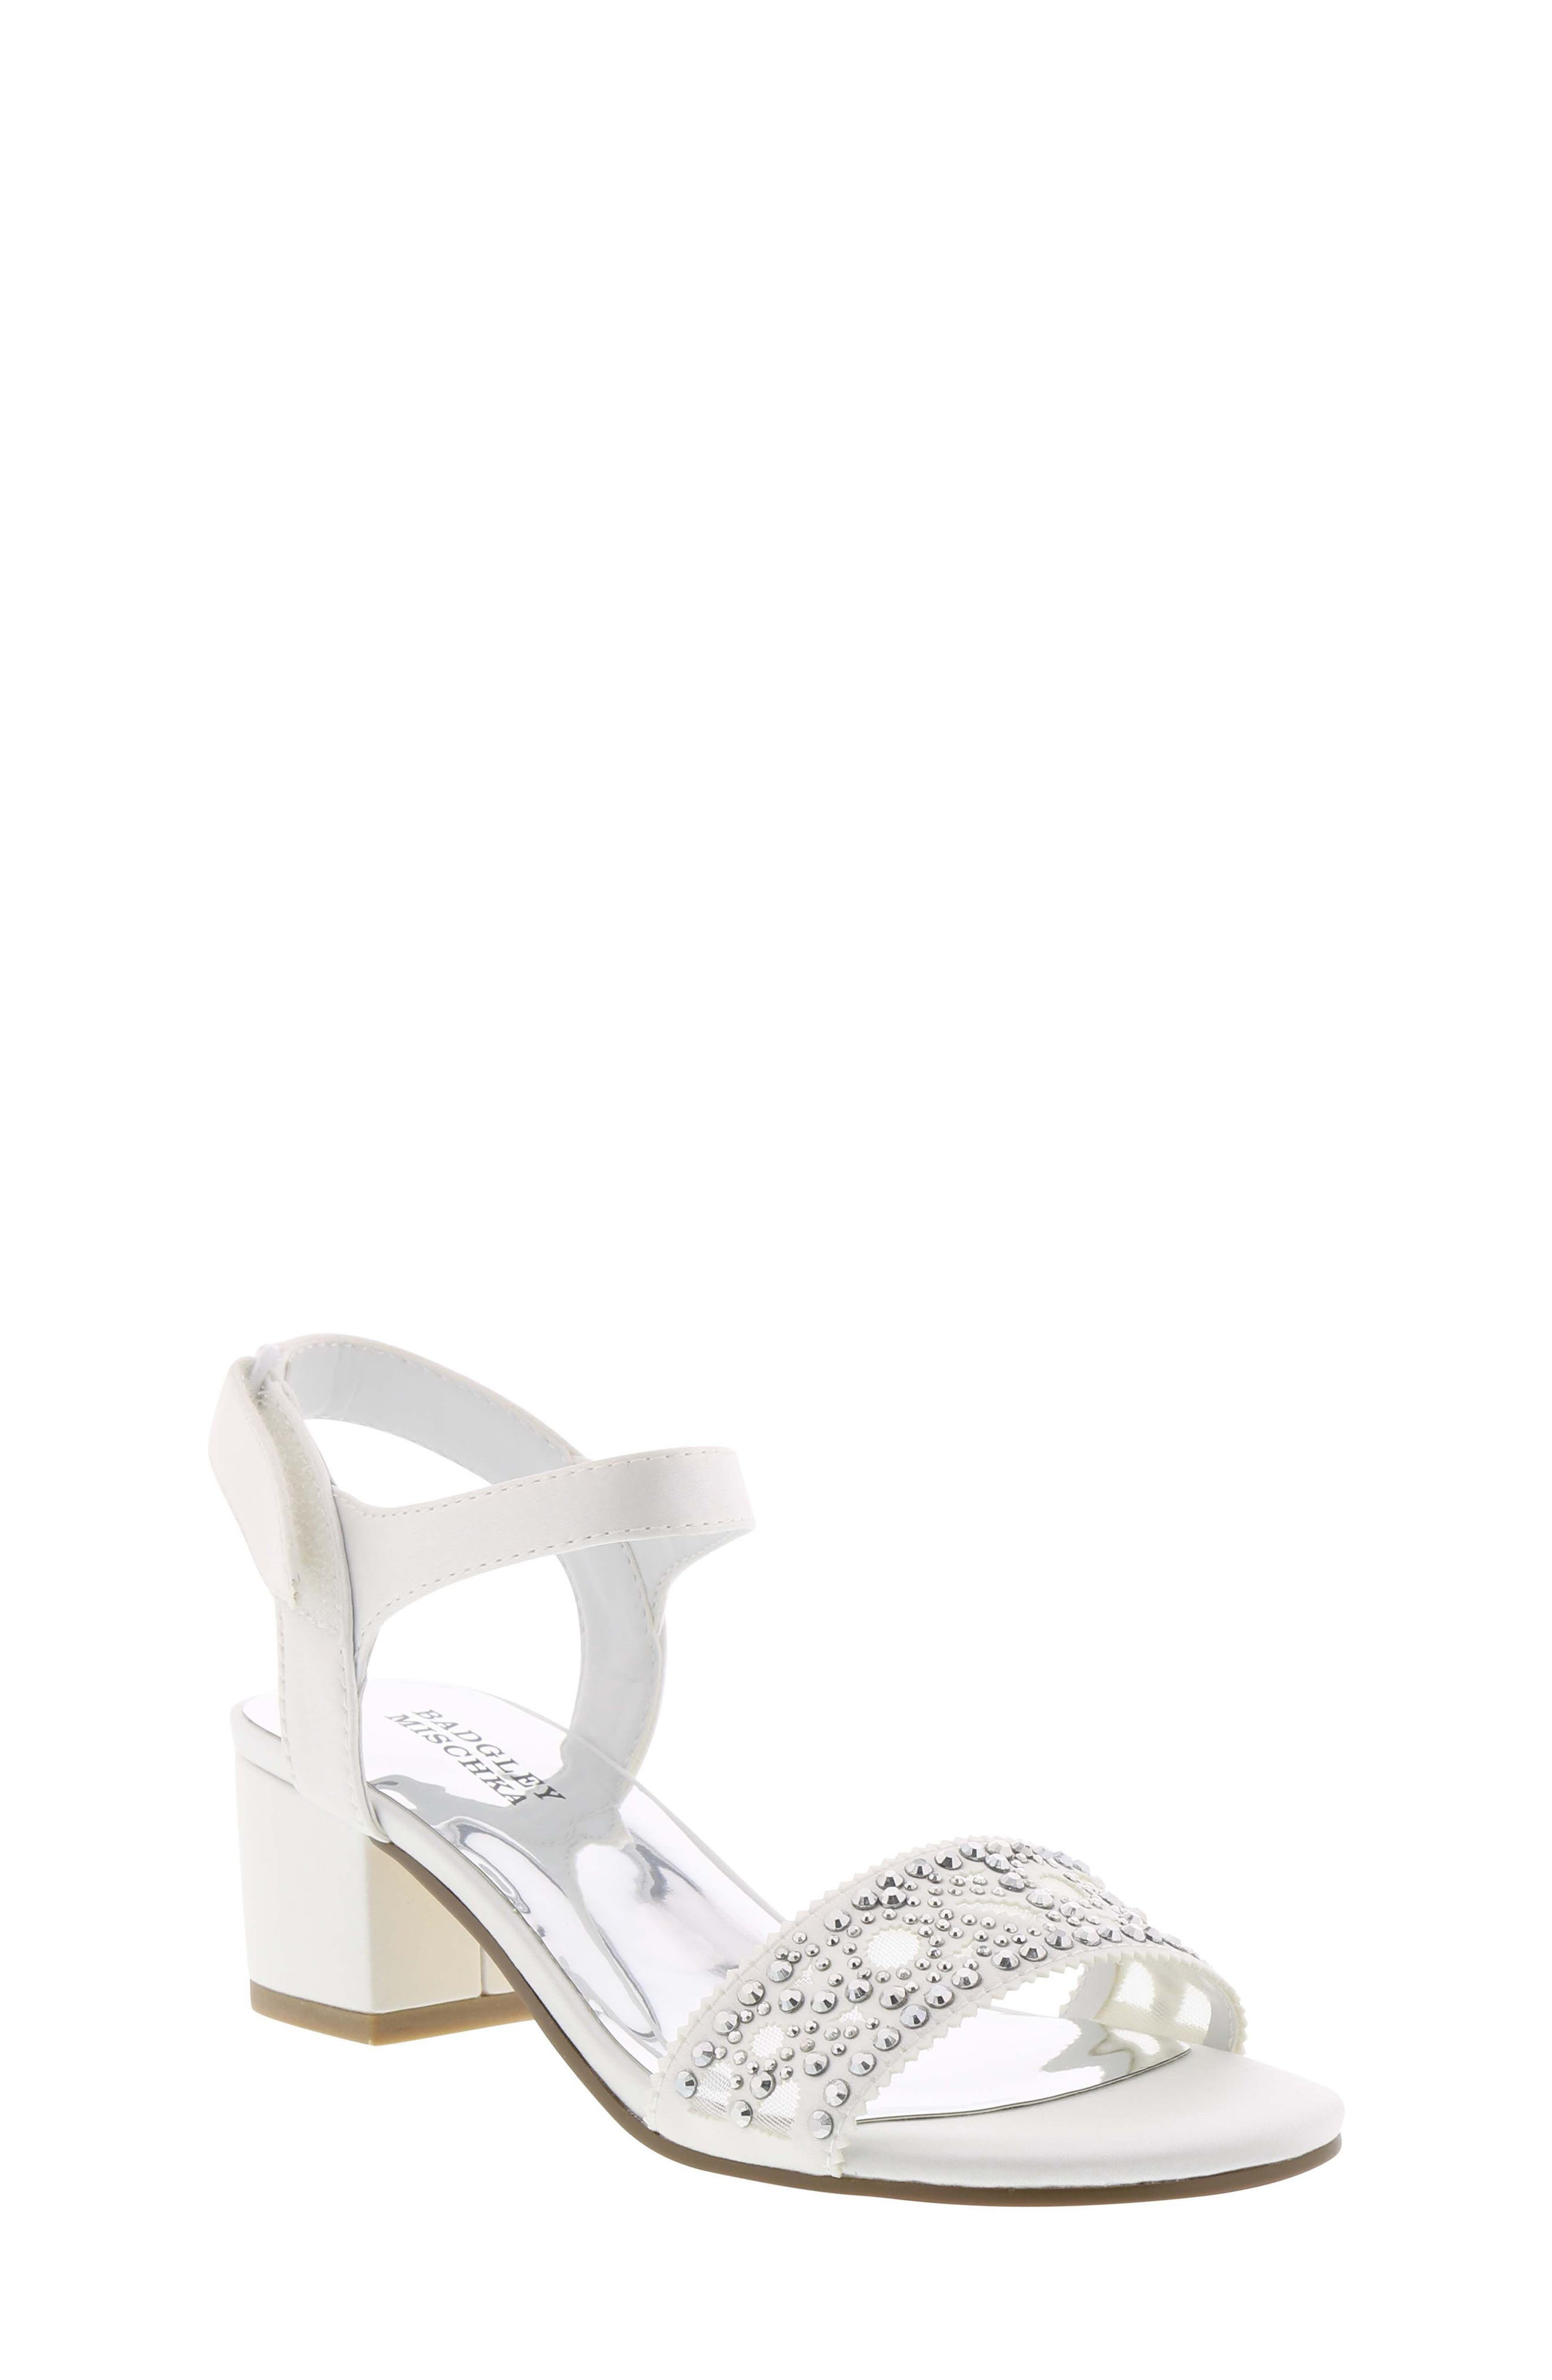 Badgley Mischka Ascot Gems Sandal (Toddler, Little Kid & Big Kid)